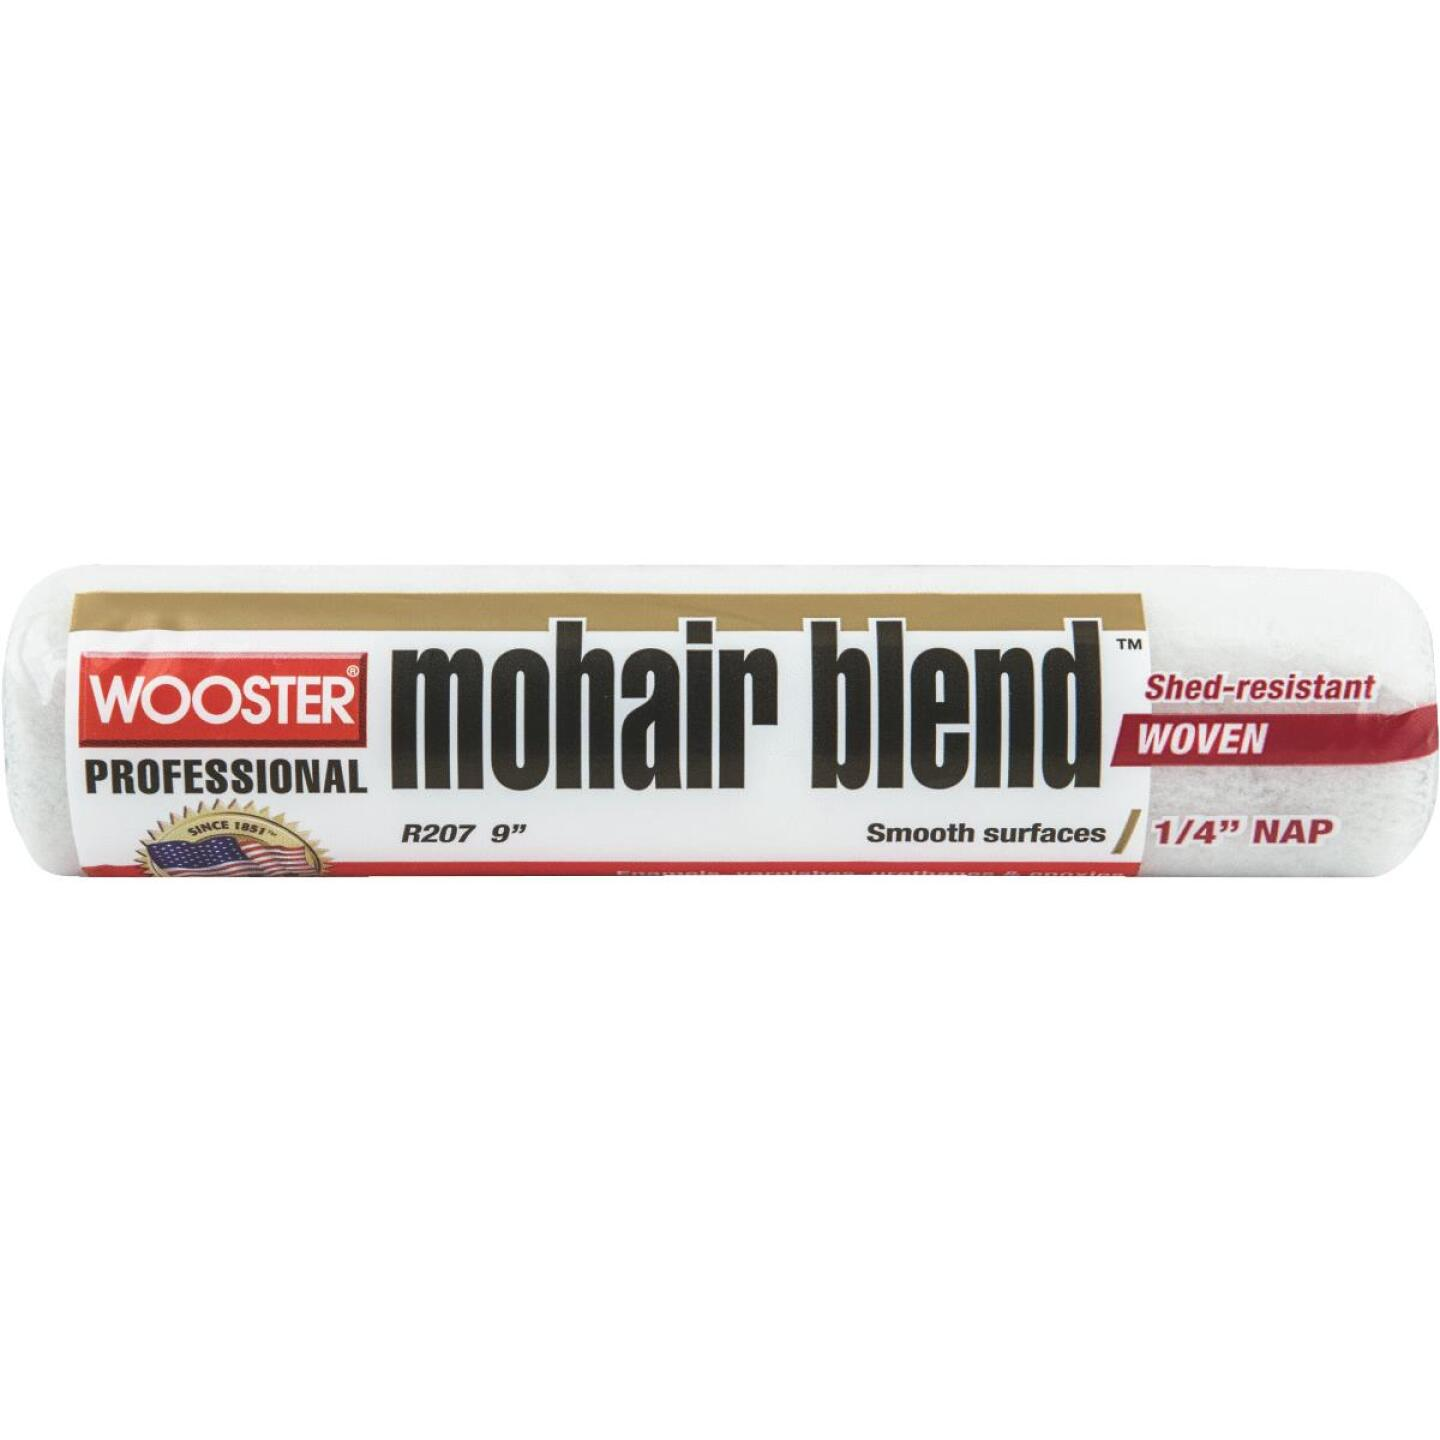 Wooster 9 In. x 1/4 In. Mohair Woven Blend Roller Cover Image 1